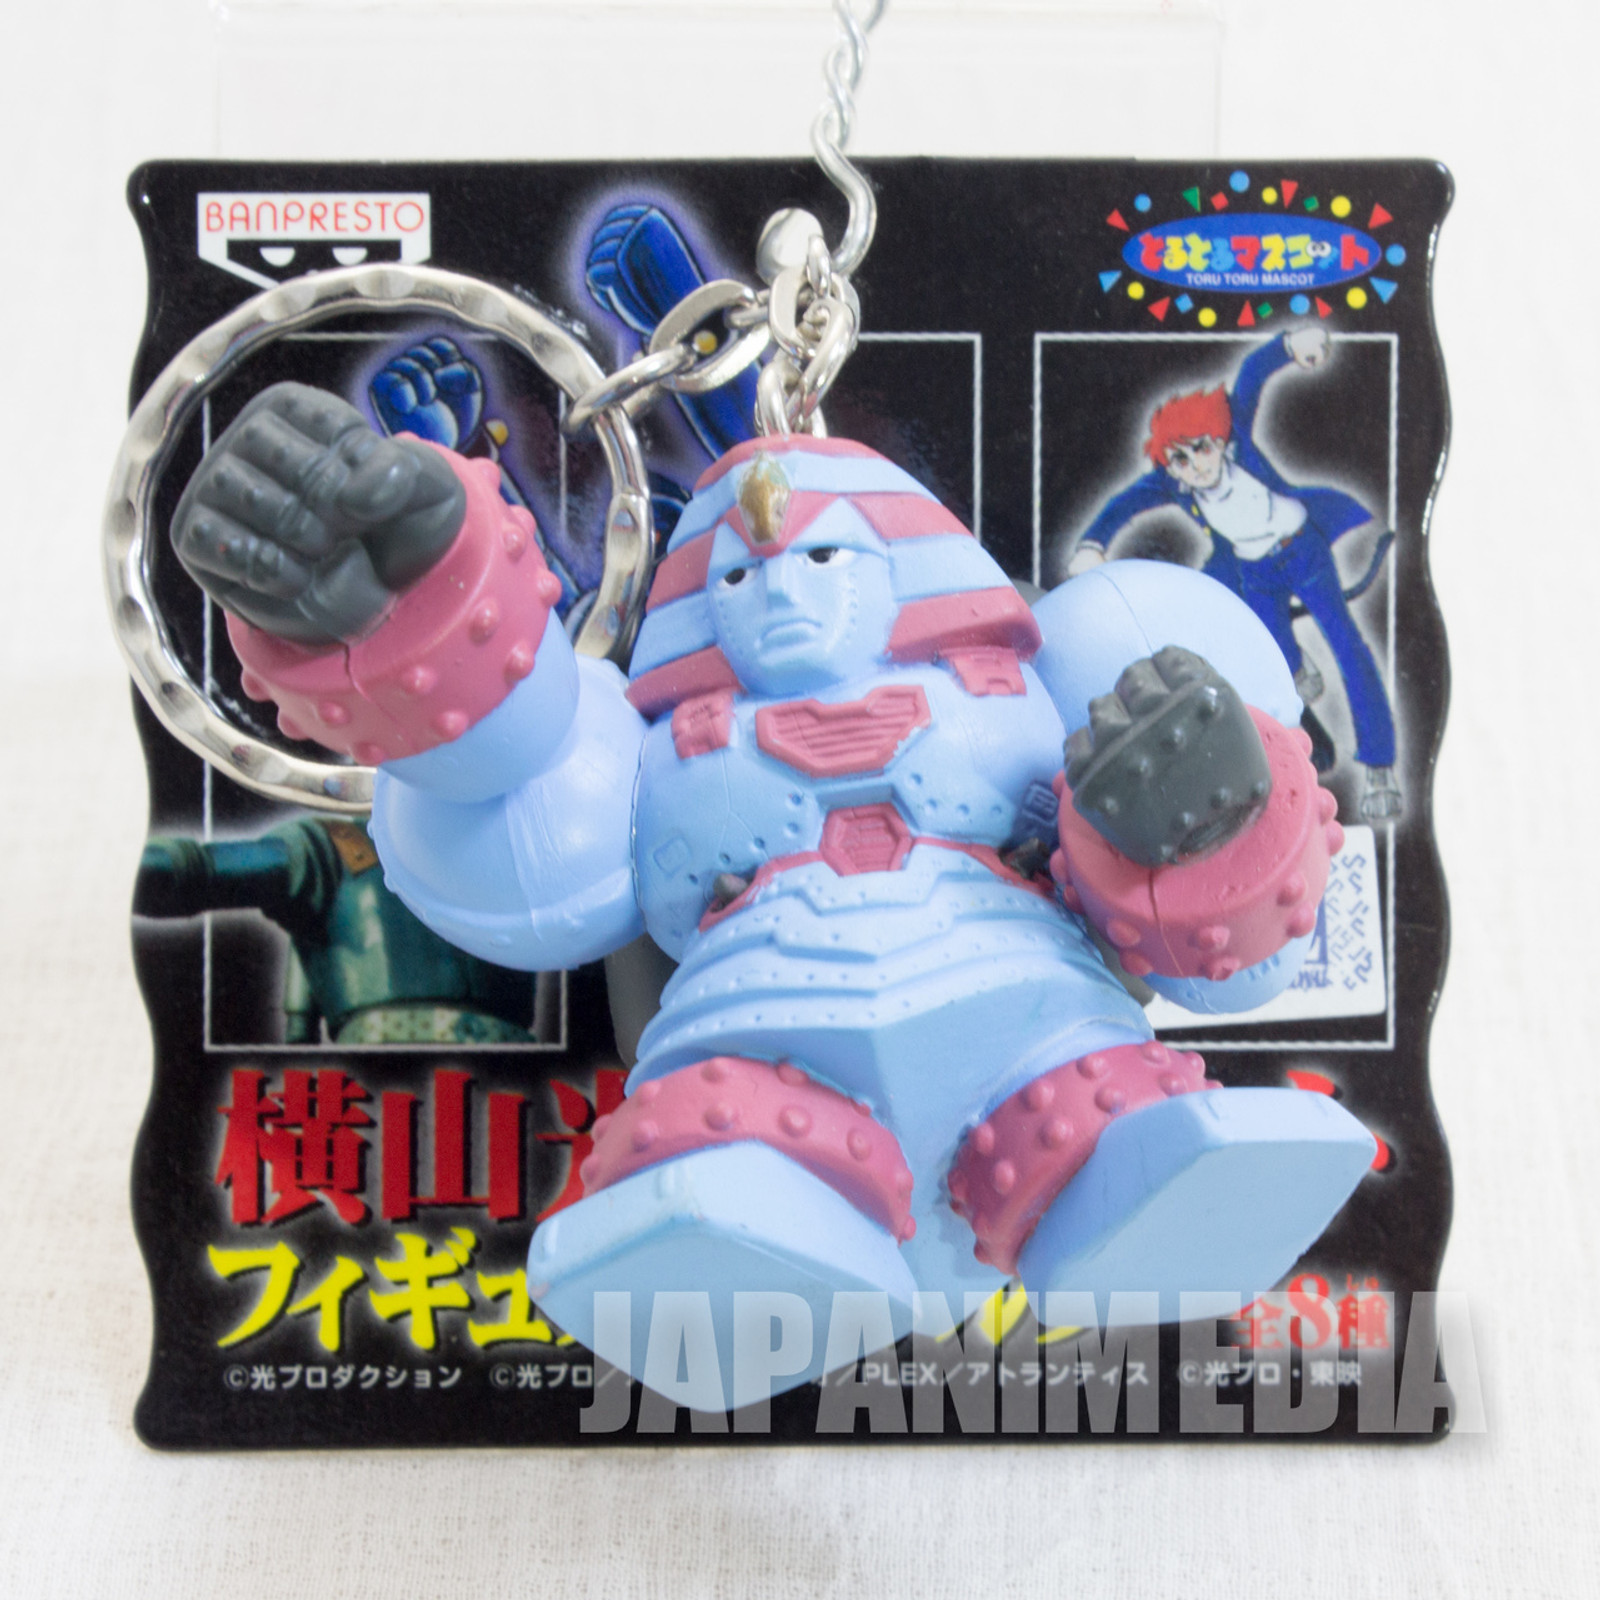 Giant Robo GR1 Live Action ver. Mitsuteru Yokoyama Figure Key Chain Banpresto JAPAN